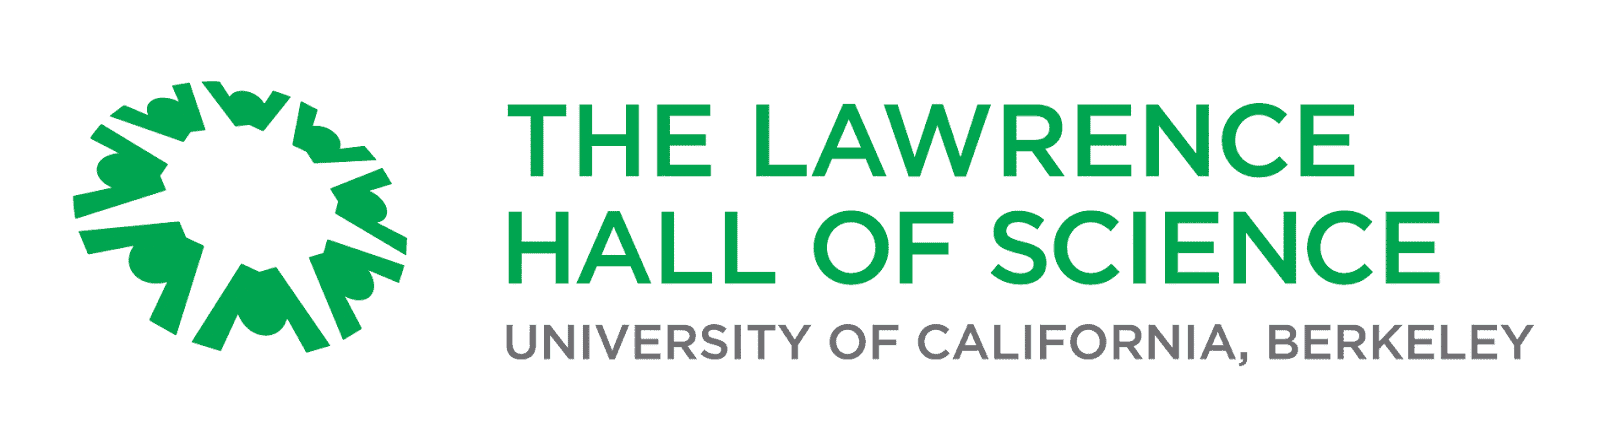 lawrence-hall-of-science-logo-horizontal-a